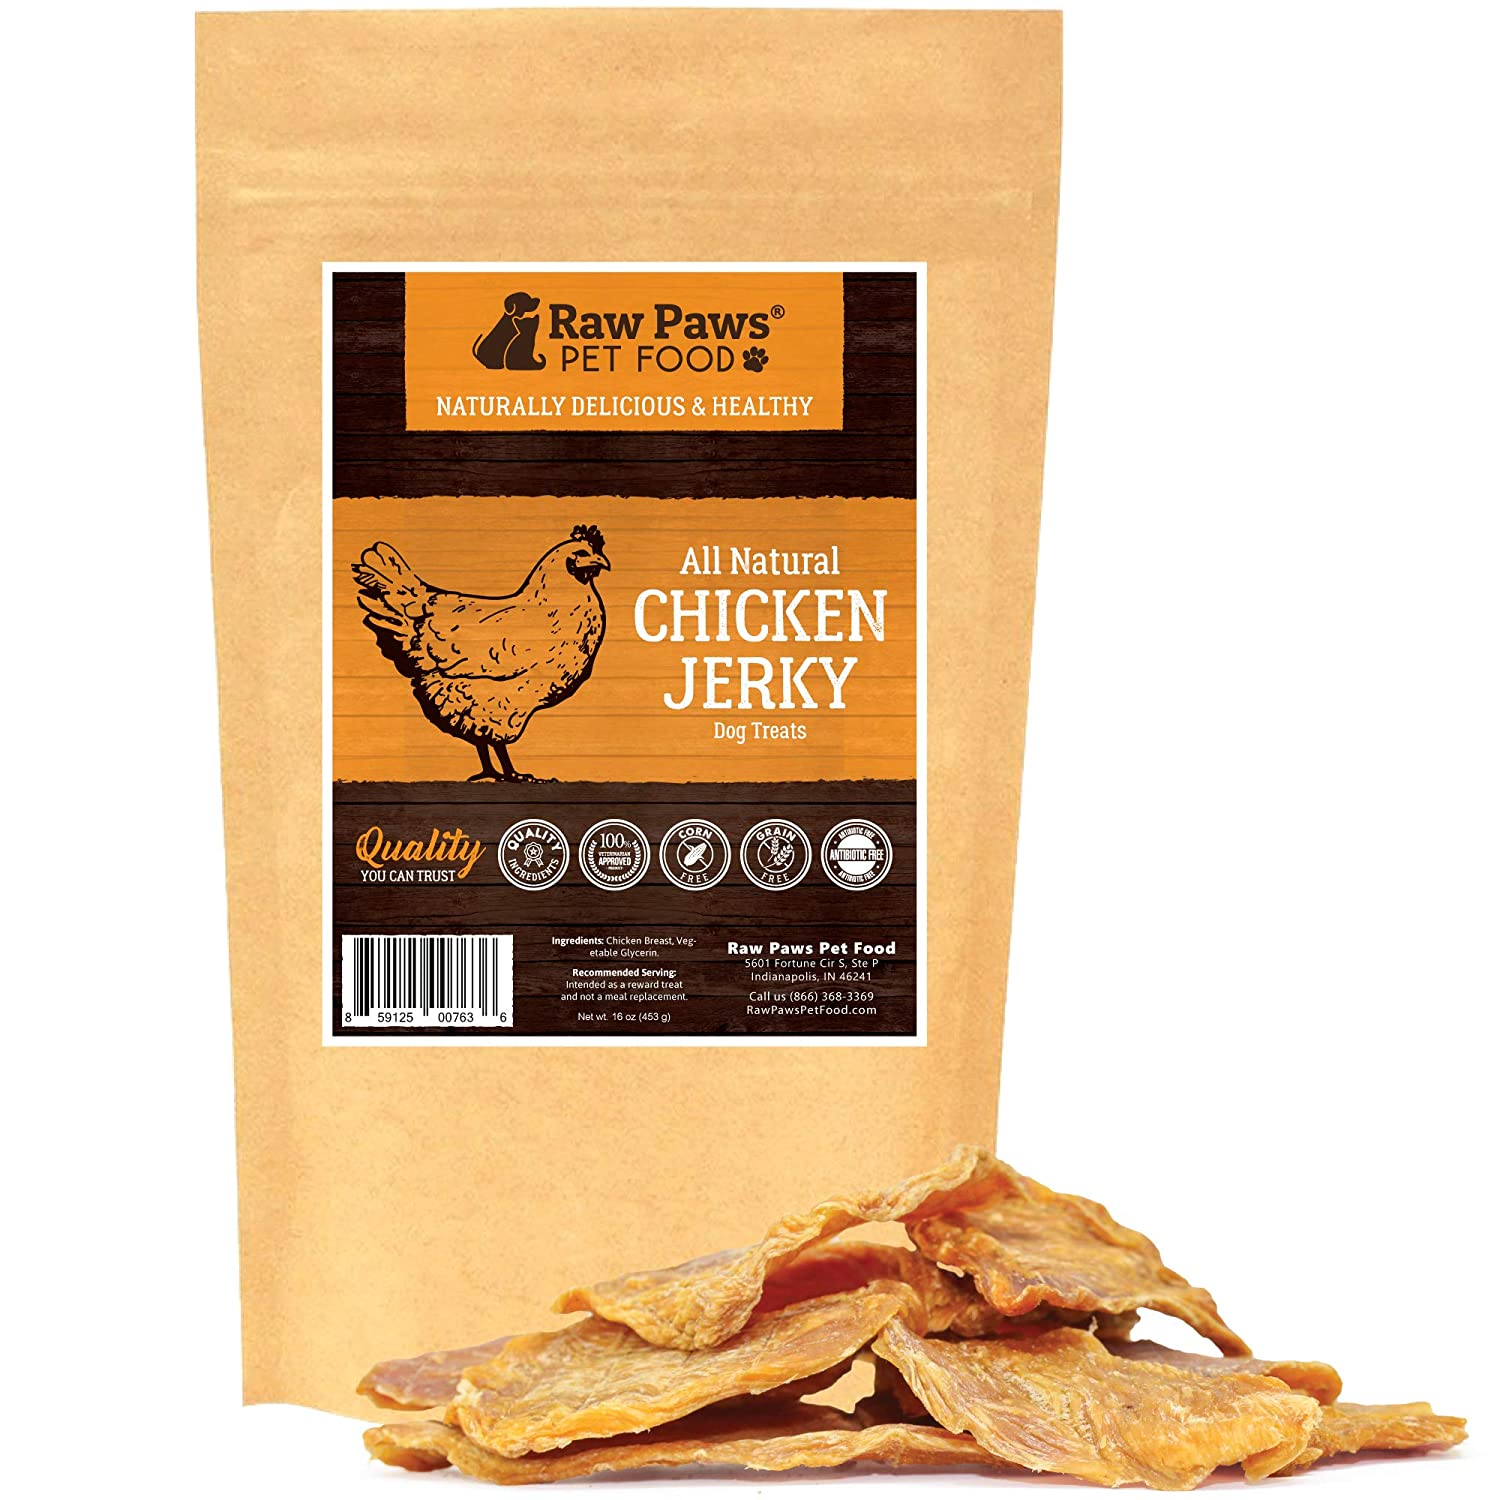 Raw Paws Premium Chicken Jerky Dog Treats - Natural Dog Jerky Treats Packed in USA - Real Chicken Dog Treats - Chicken Jerky for Dogs Raised Without Antibiotics - Free Range Chicken Dog Chews